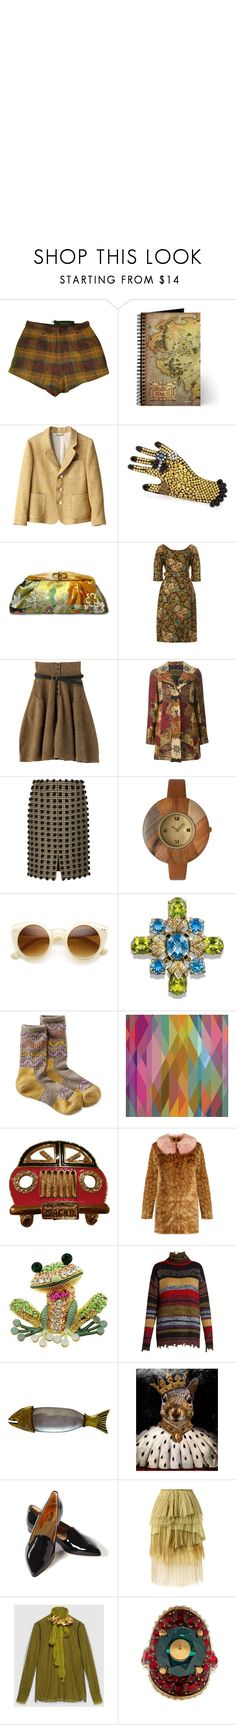 """Untitled #2822"" by dawn-lindenberg ❤ liked on Polyvore featuring Madame A Paris, CA4LA, Beautiful People, Gucci, SABYASACHI, Uroco, Iliann Loeb, Etro, Prada and Sonia Rykiel"